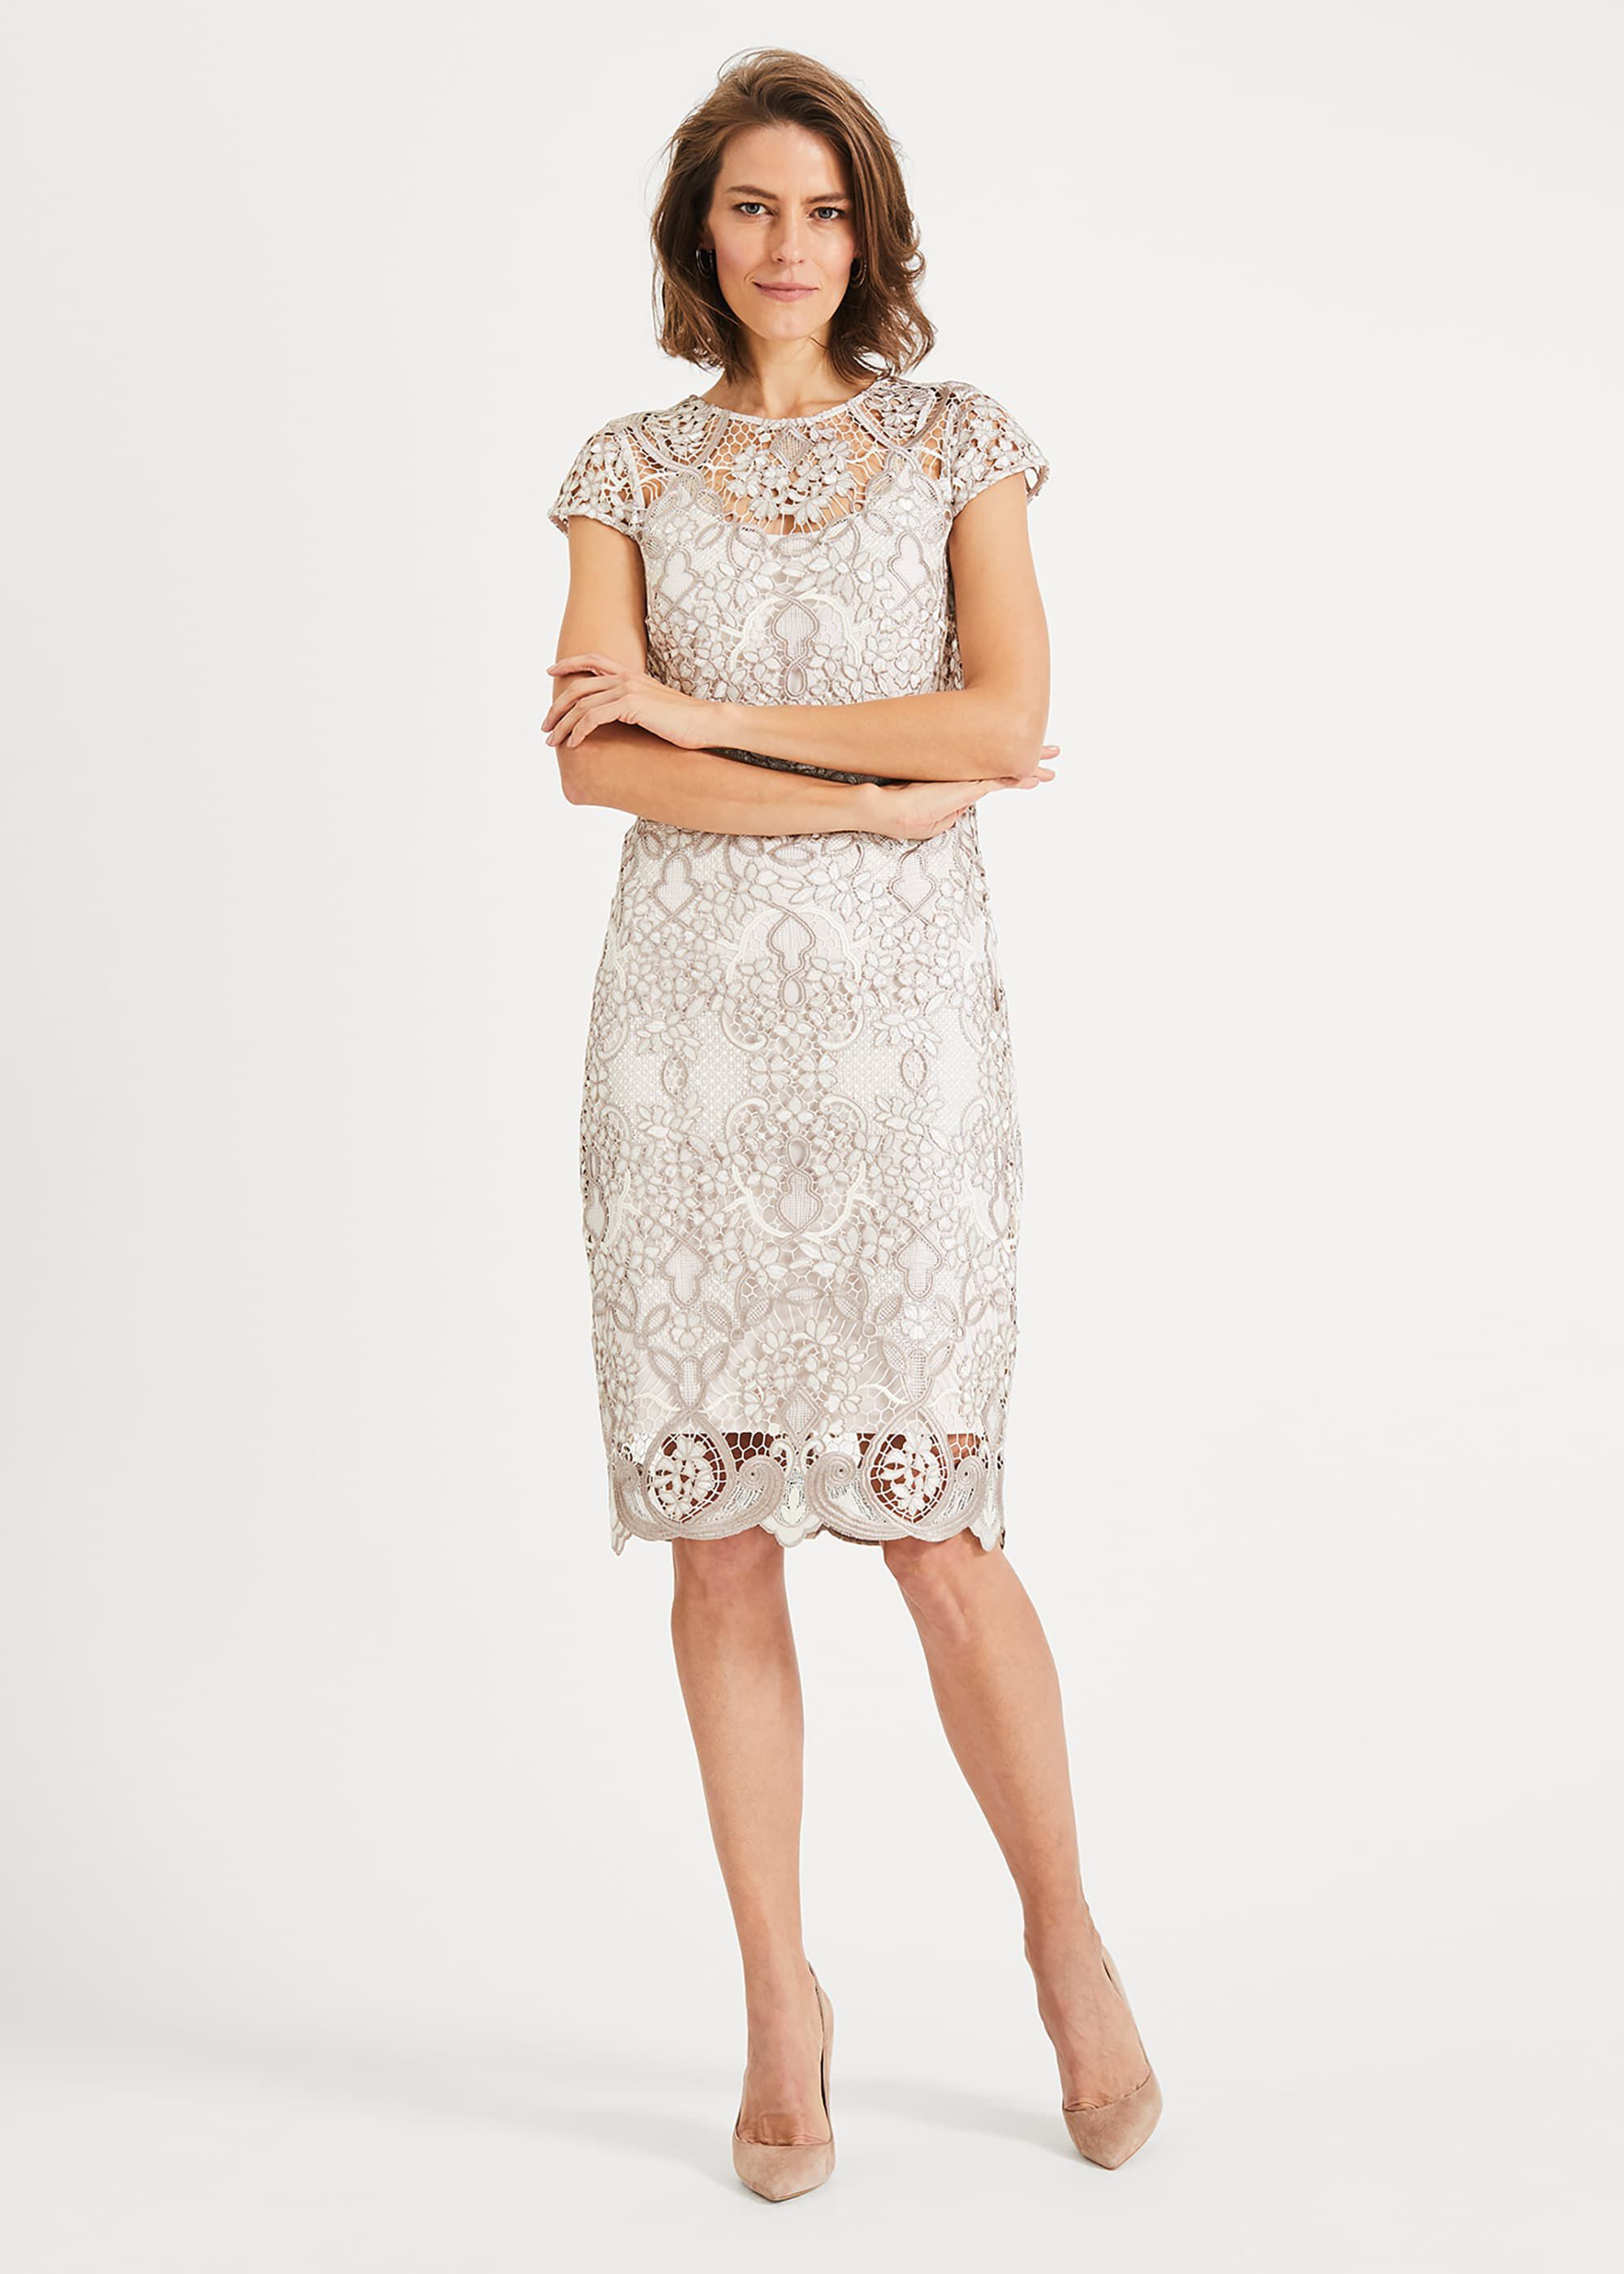 Phase Eight Frances Lace Dress, Cream, Shift, Occasion Dress